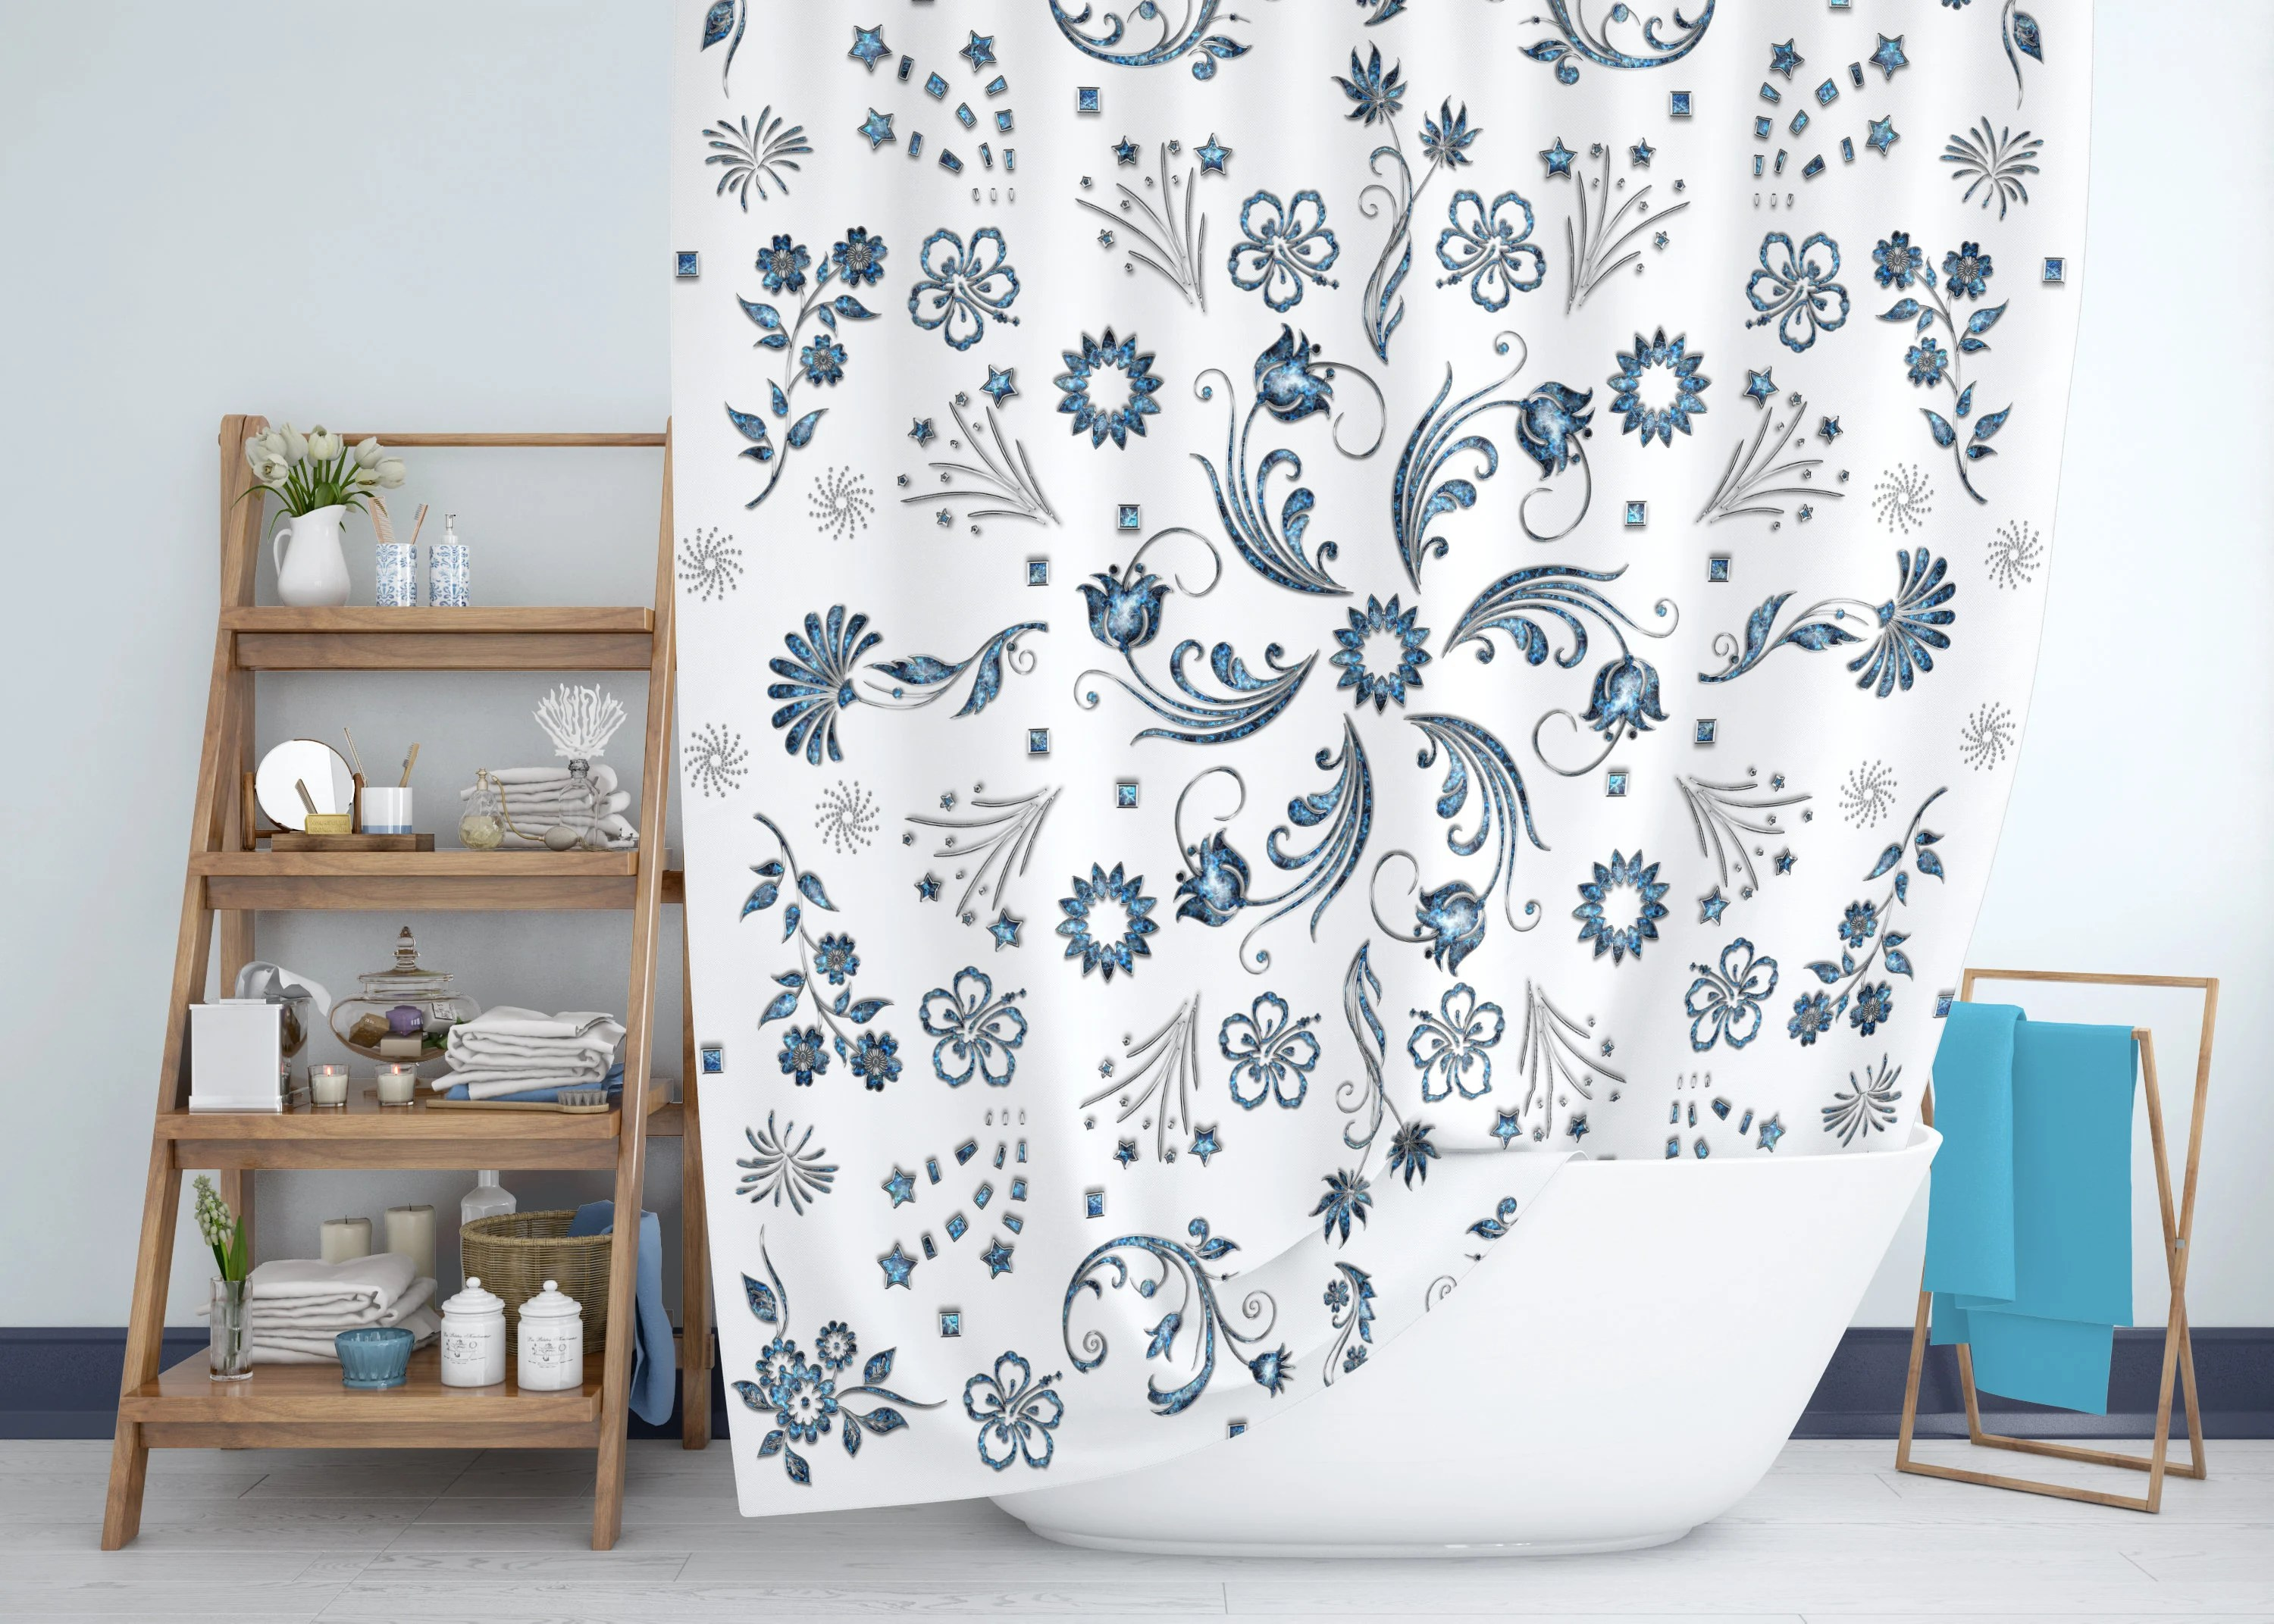 Navy Blue Floral Pattern Shower Curtain Luxury 3d Abalone Shell Jewels Of Flowers And Starbursts In Sapphire Turquoise And Silver